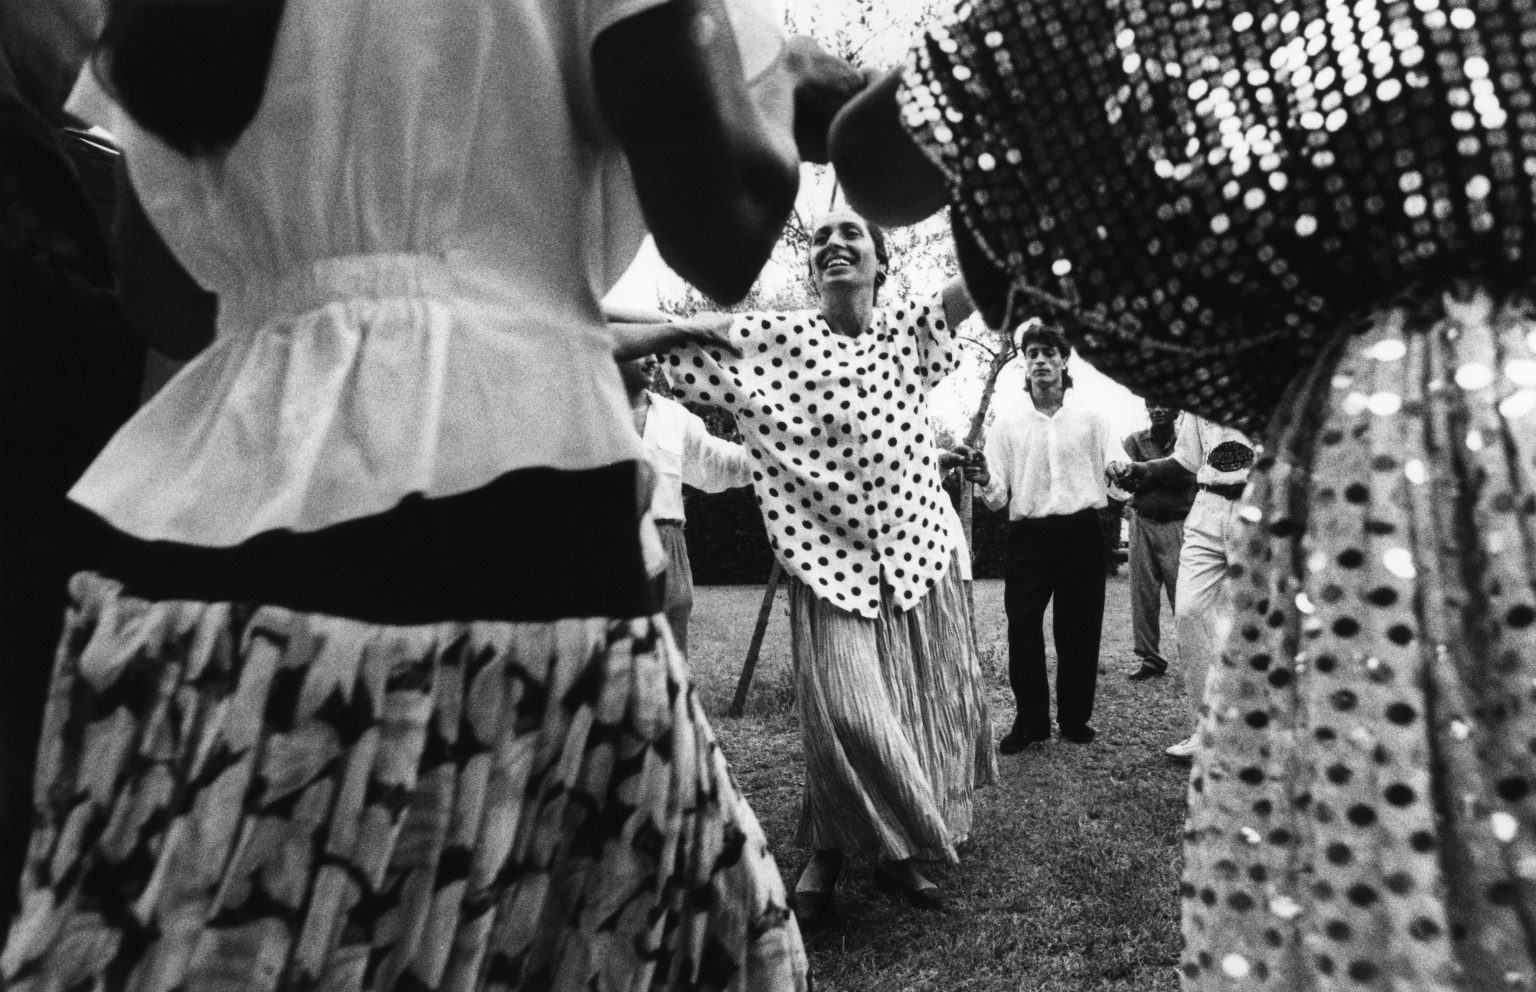 """Florence , 1993 - Nomads' camp - Dancing during a party >< Firenze , 1993 - Campo nomadi - Danze durante una festa<p><span style=""""color: #ff0000""""><strong>*** SPECIAL   FEE   APPLIES ***</strong></span></p>"""